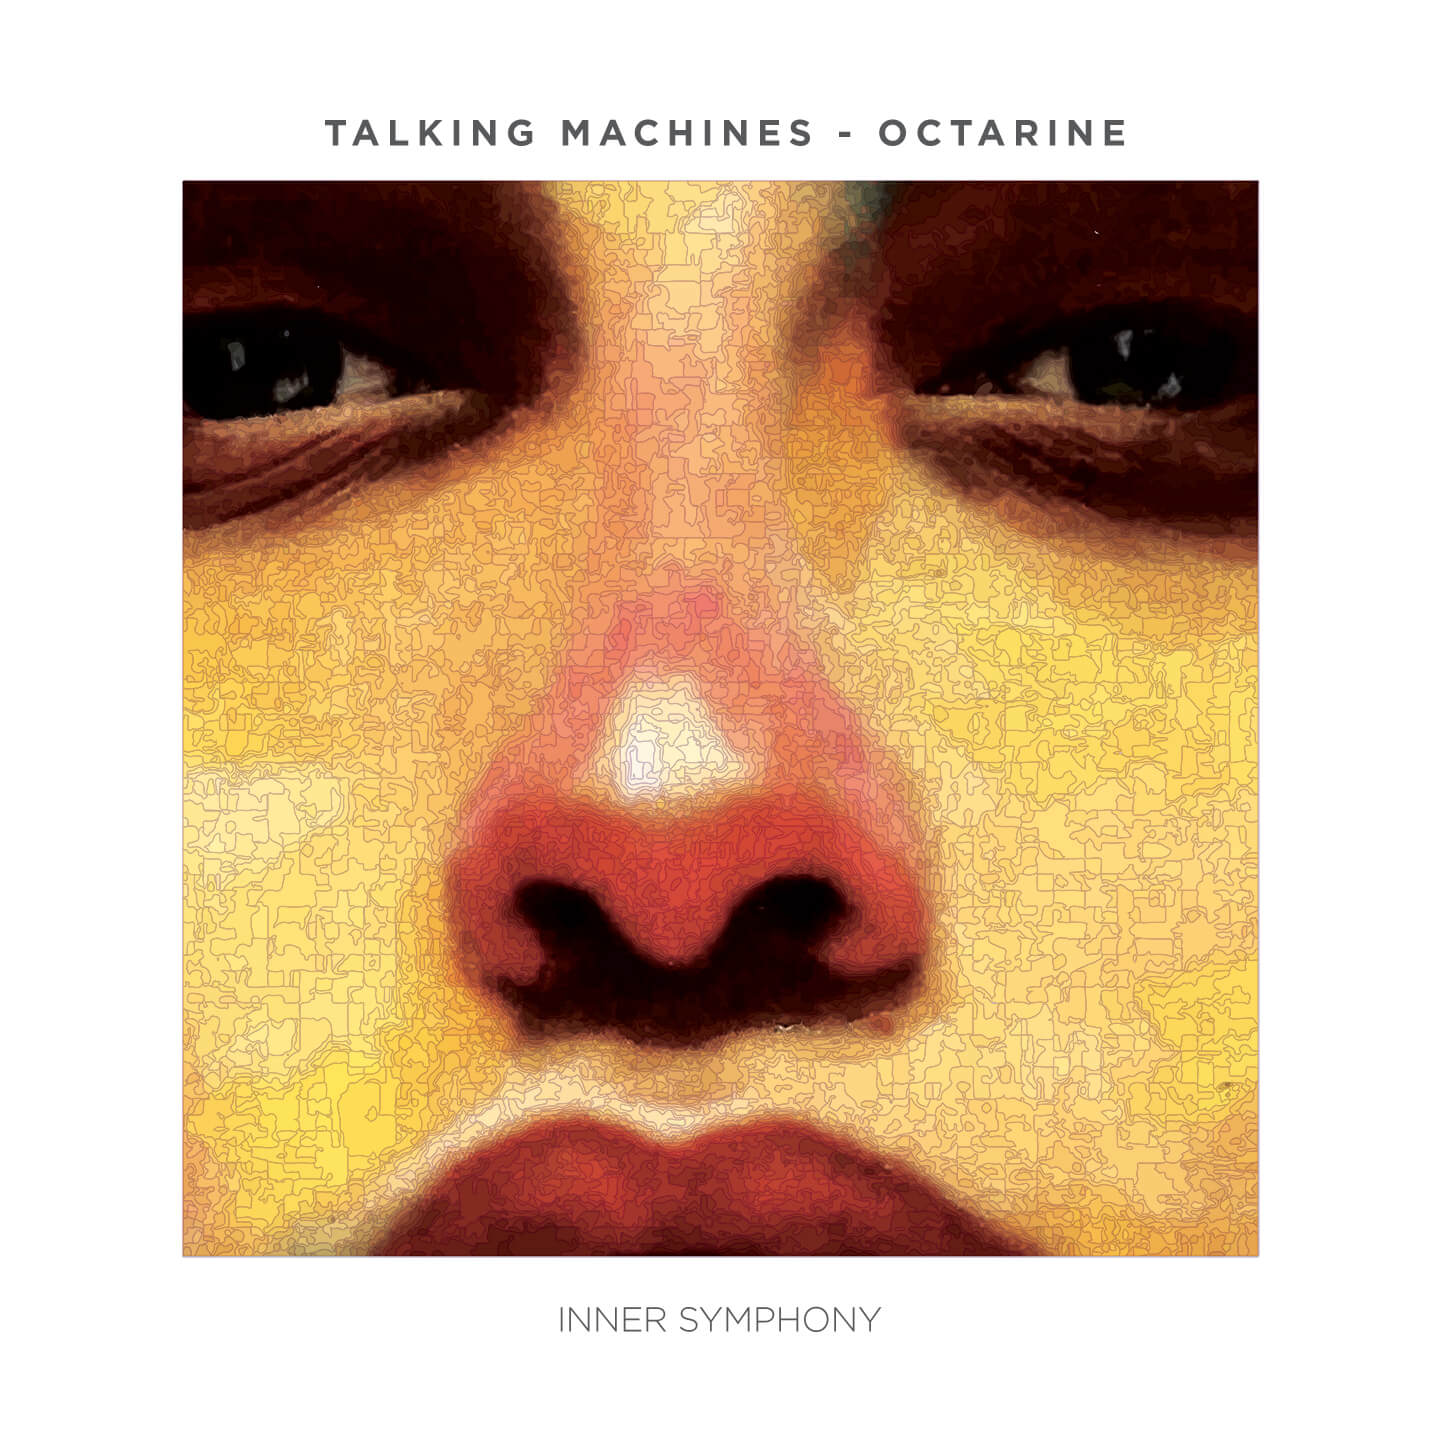 IS008 Talking Machines Octarine - Inner Symphony